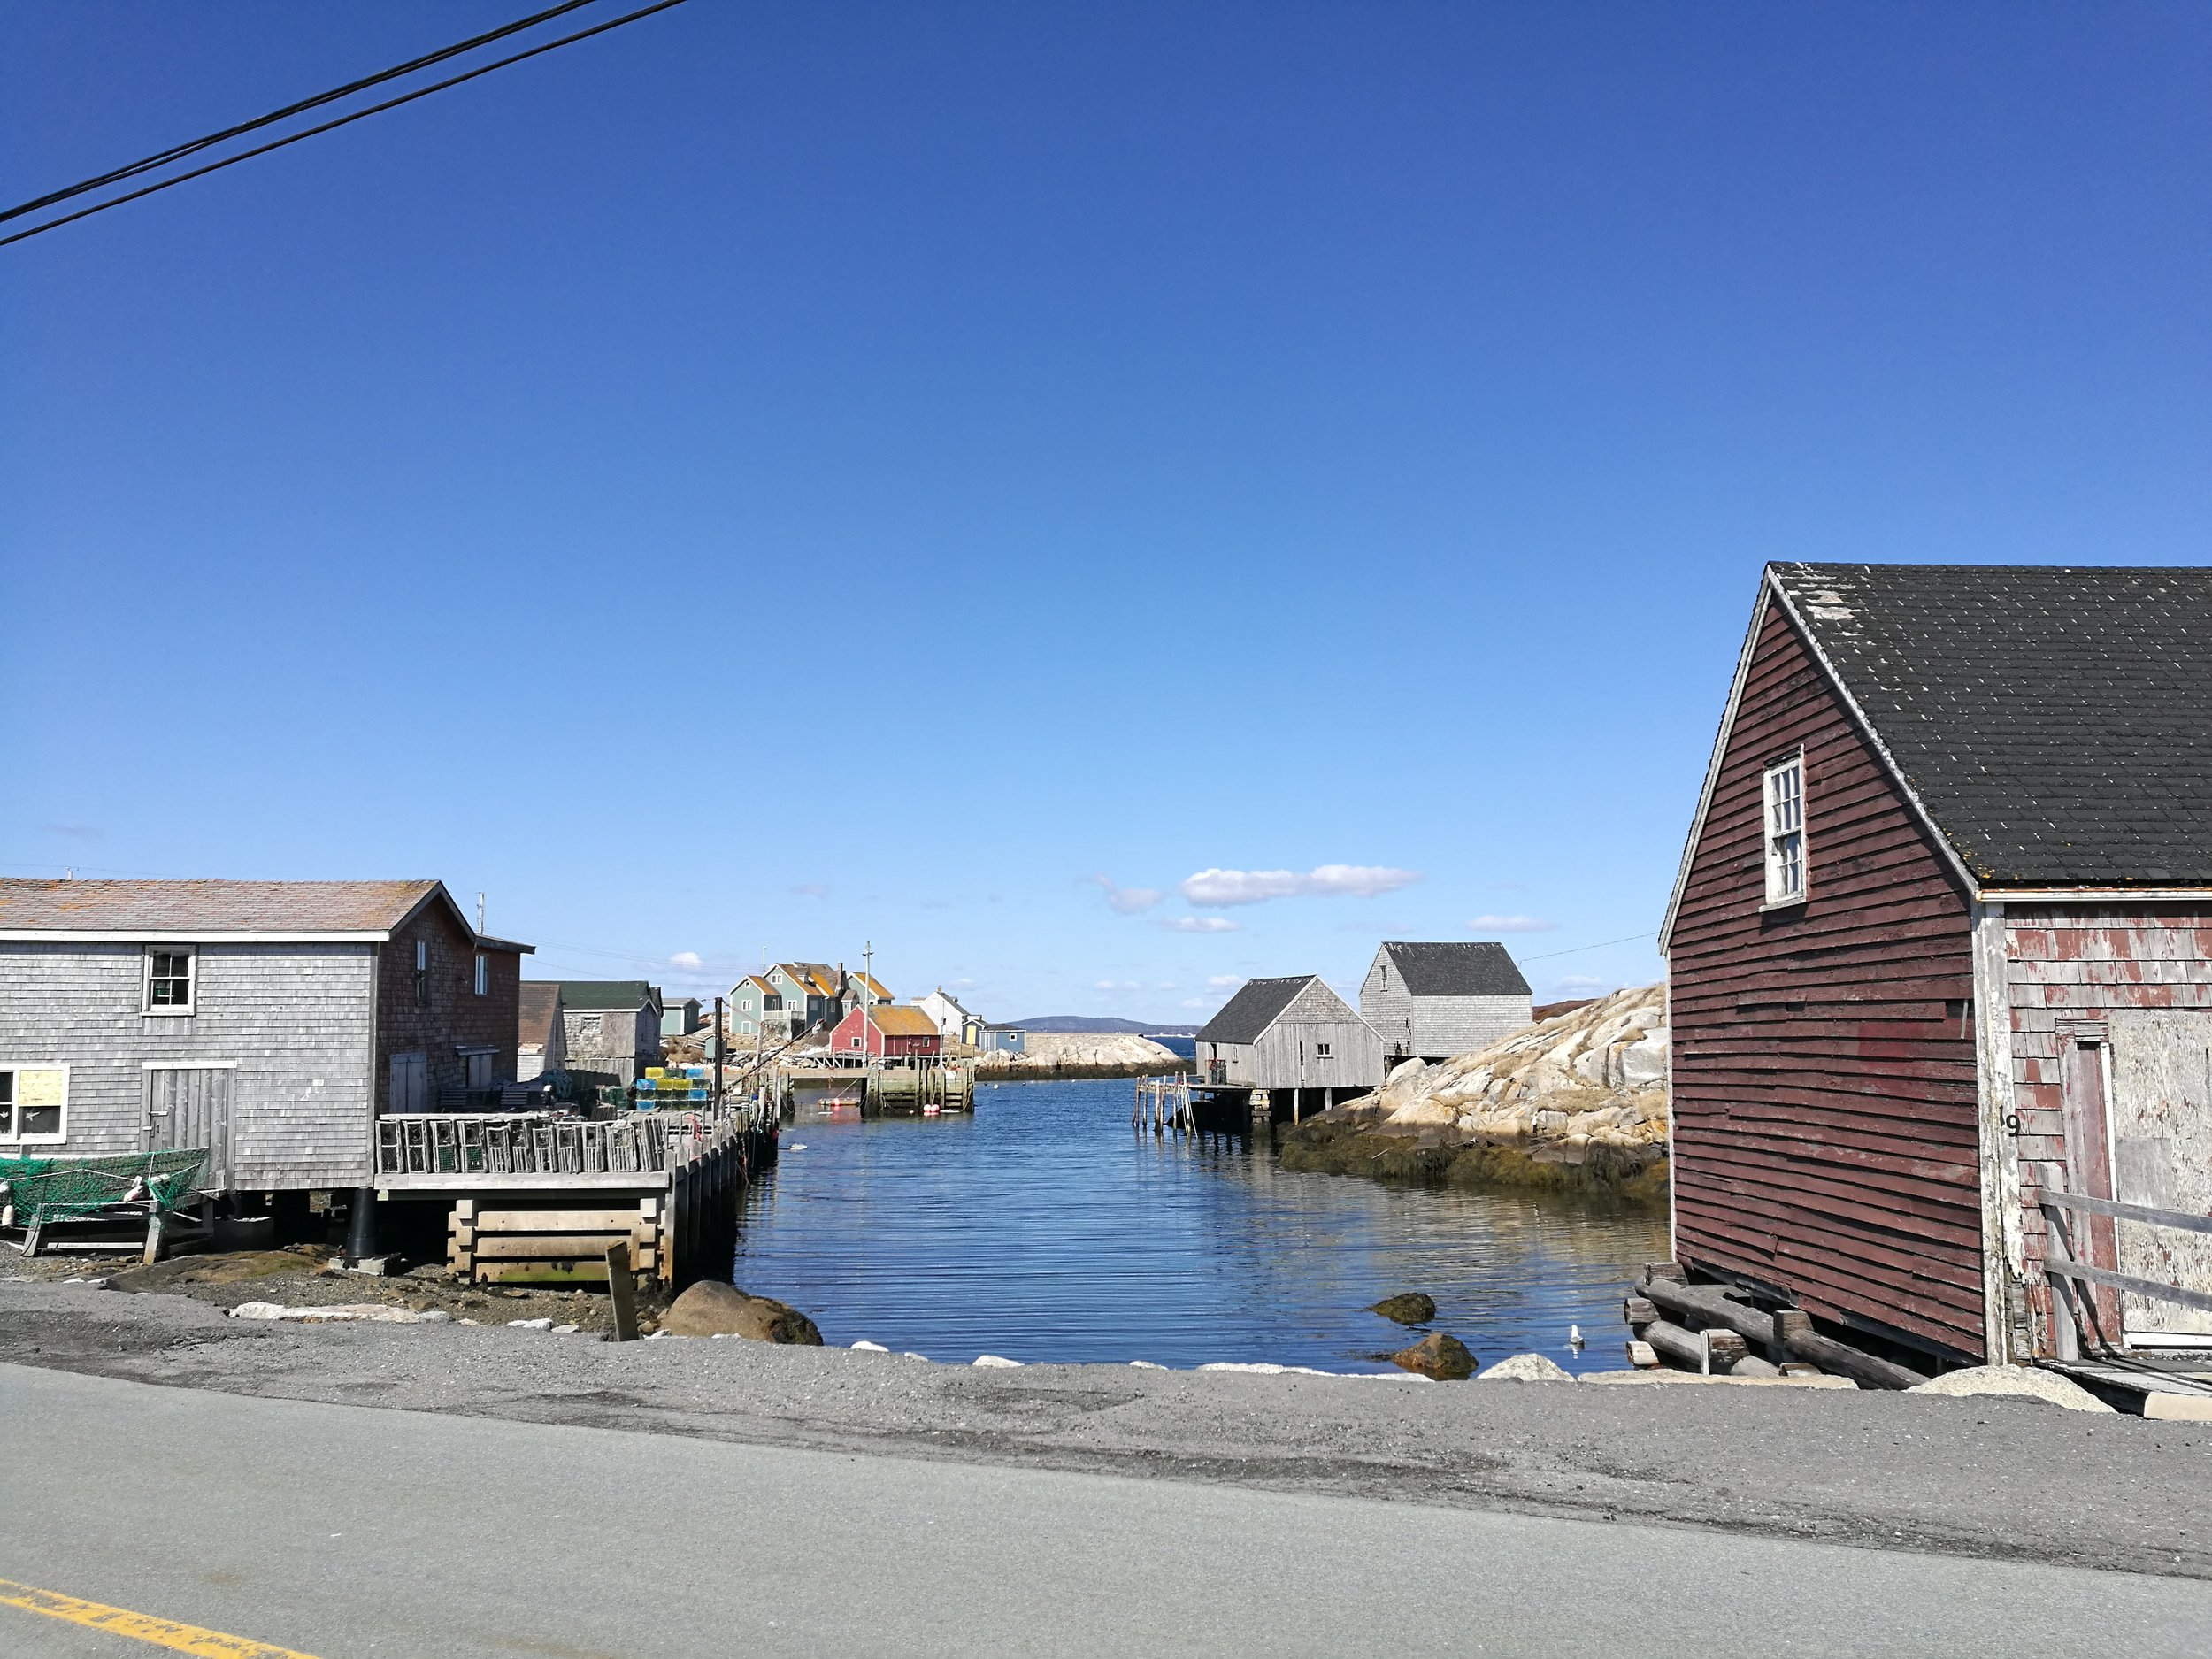 Peggy's Cove, St. Margarets Bay